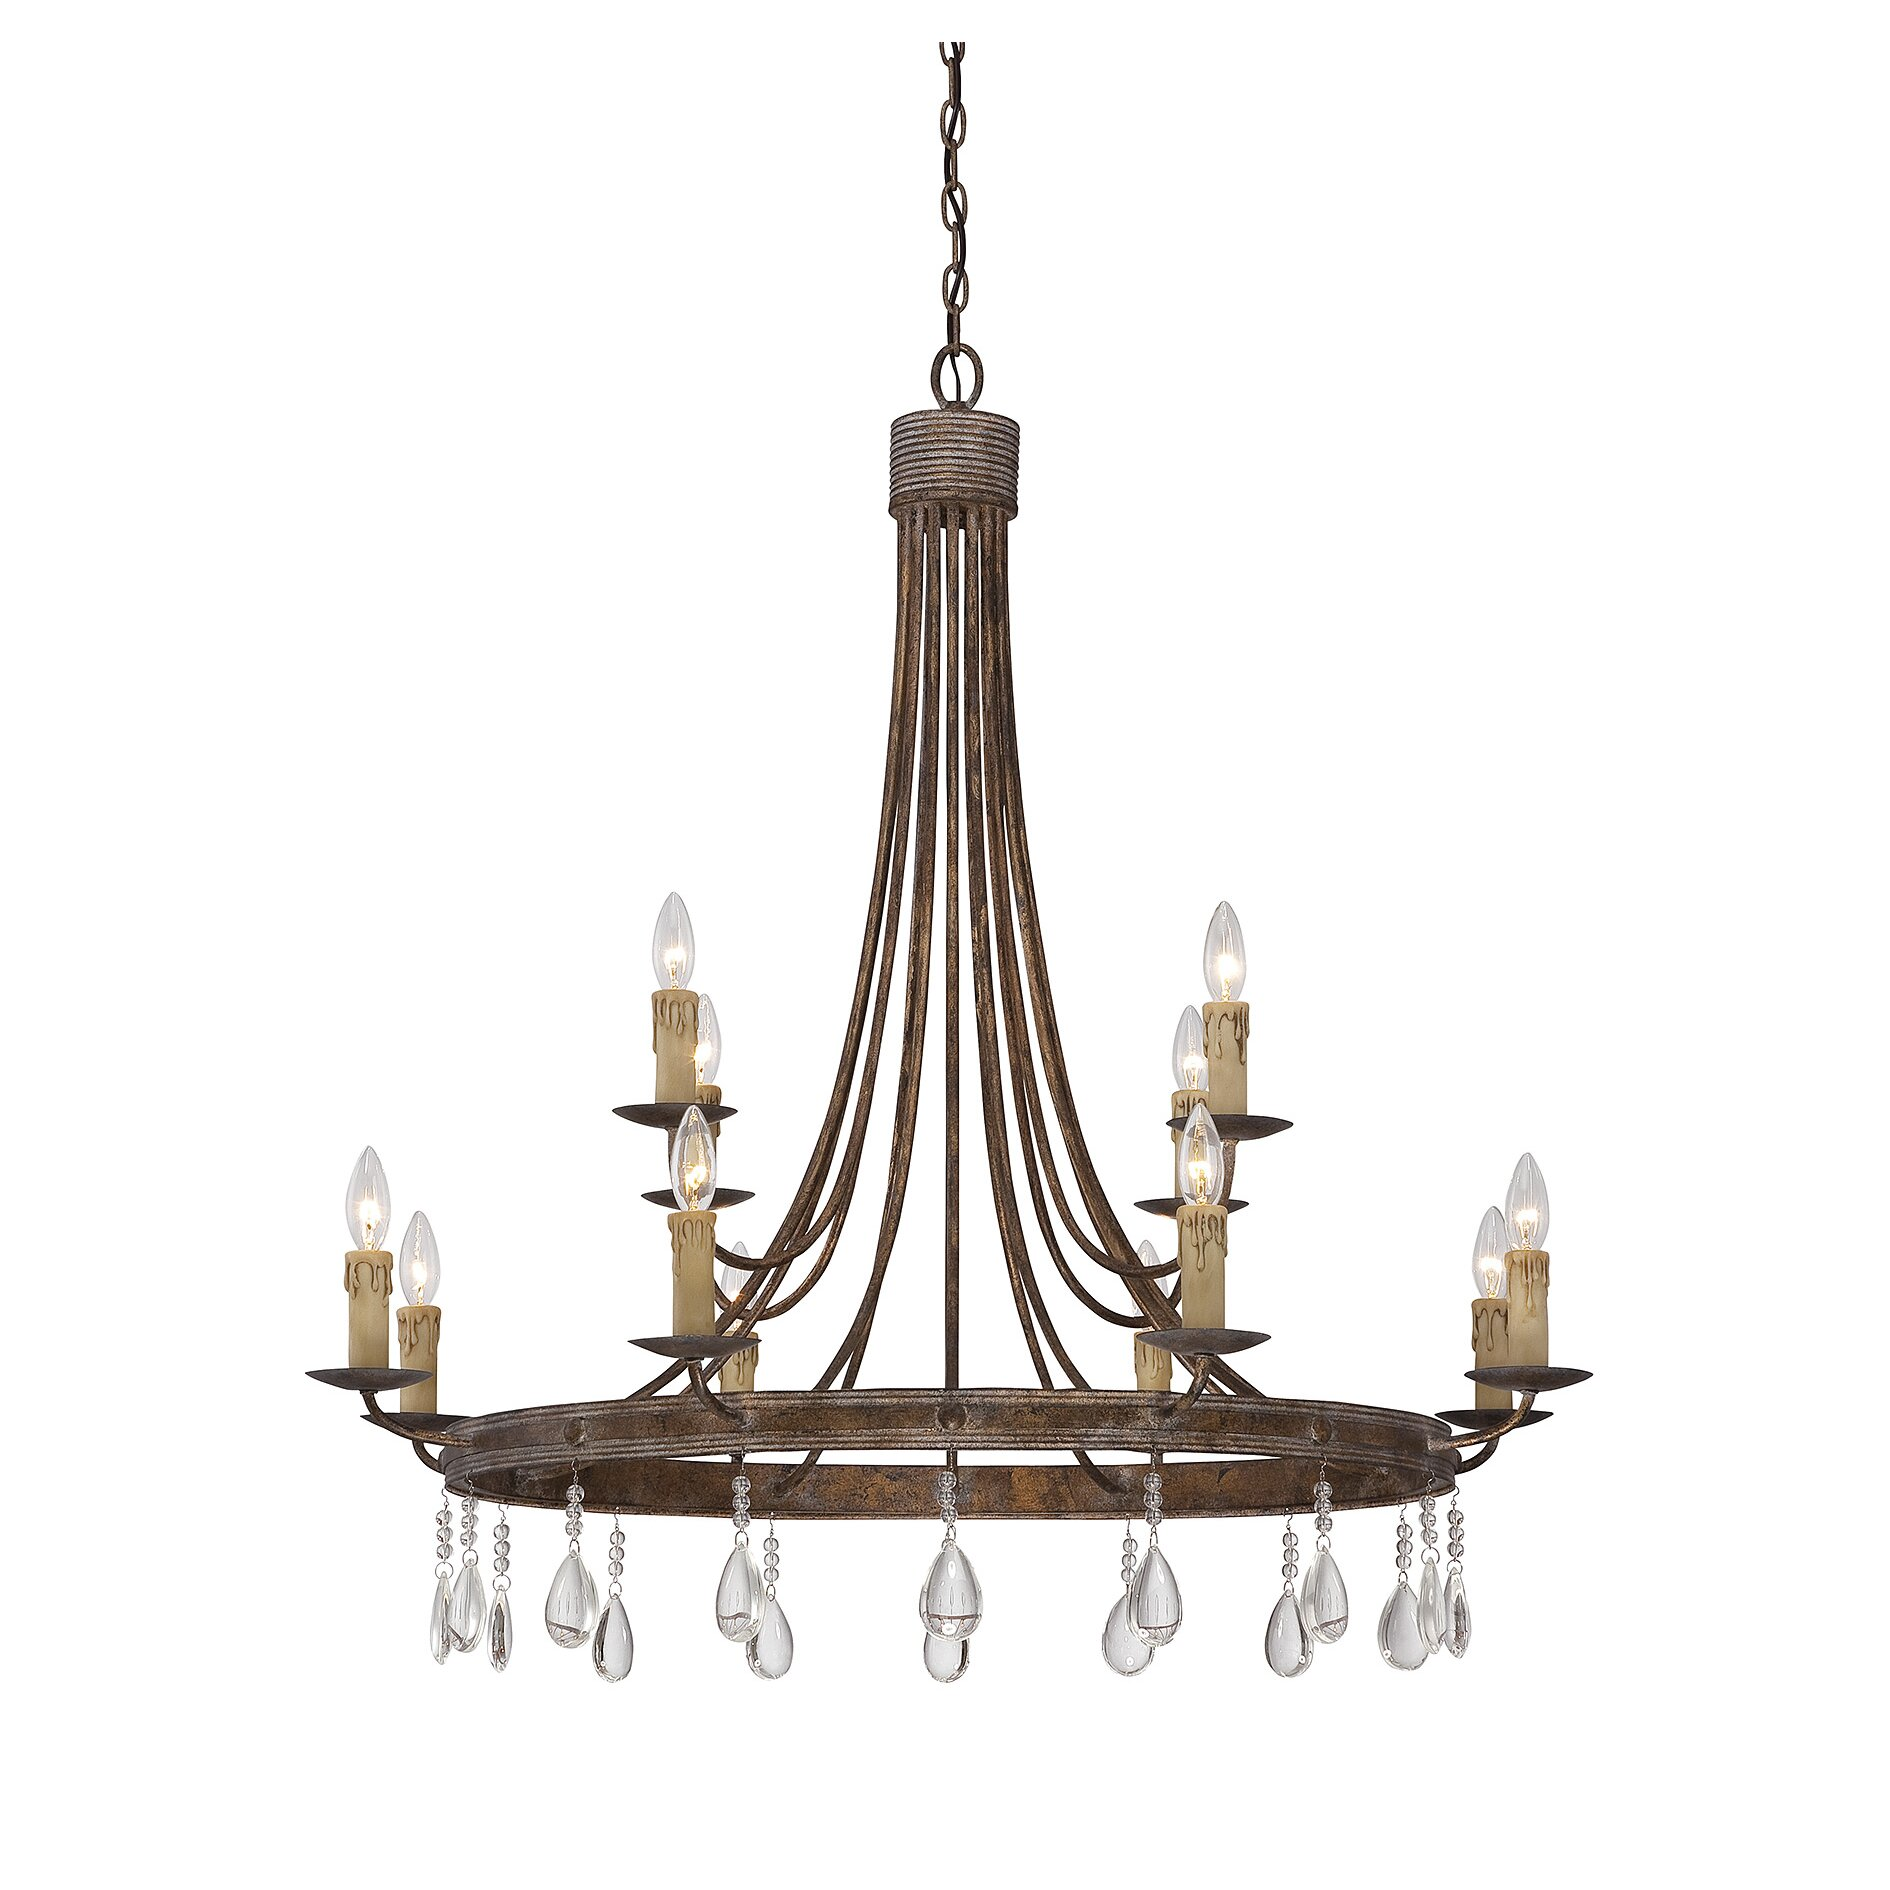 Savoy house carlisle 12 light candle chandelier reviews for Www savoyhouse com